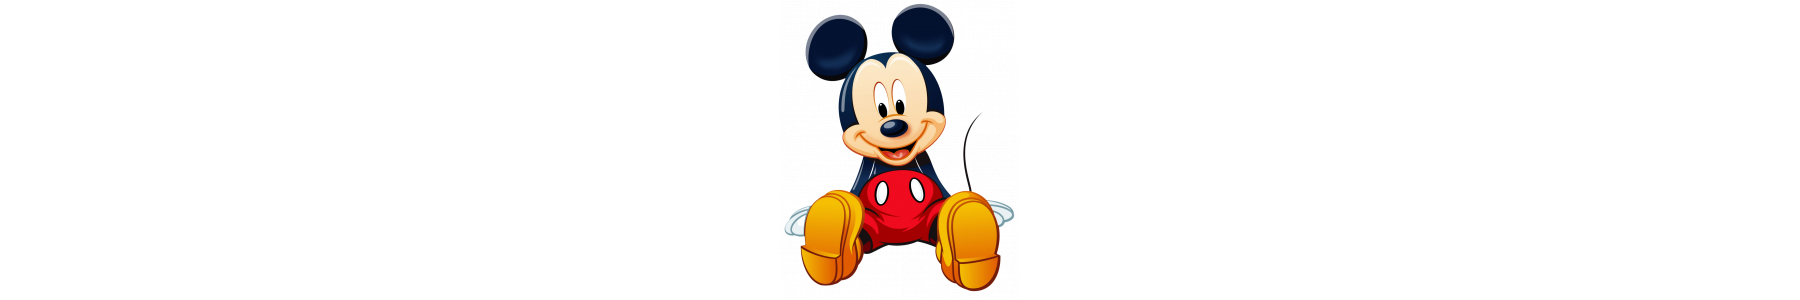 Articole party Mickey Mouse - farfurii Mickey Mouse, servetele Mickey Mouse, pahare Mickey Mouse, lumanari party Mickey Mouse